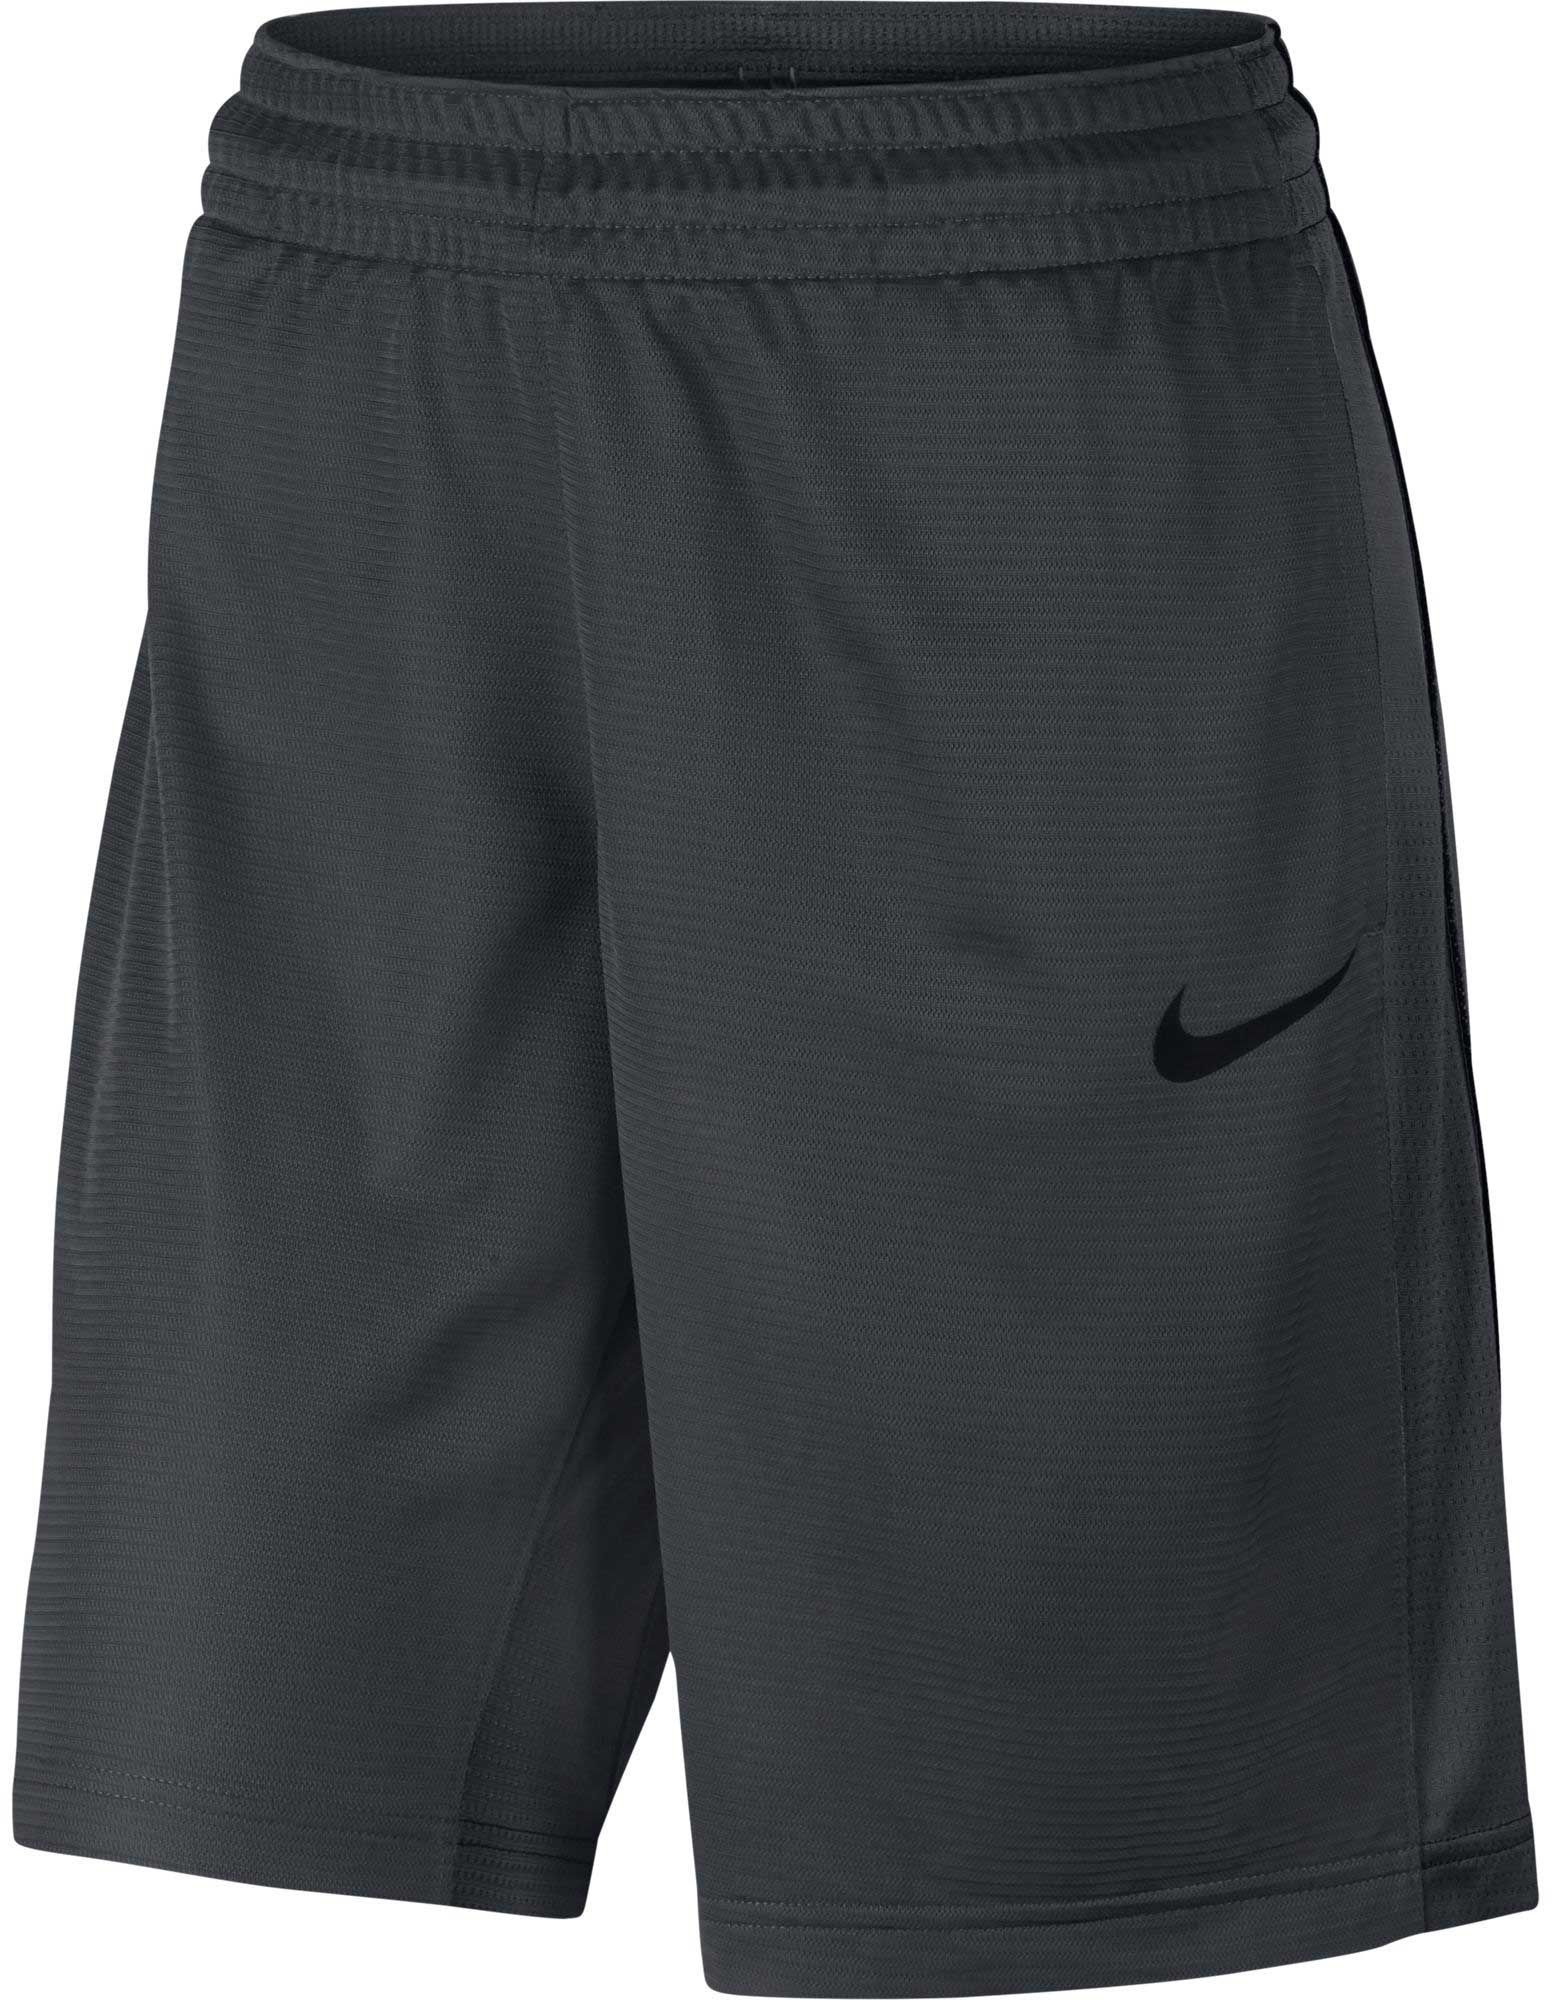 Nike Women's 10'' Dry Essential Basketball Shorts in 2020 ...